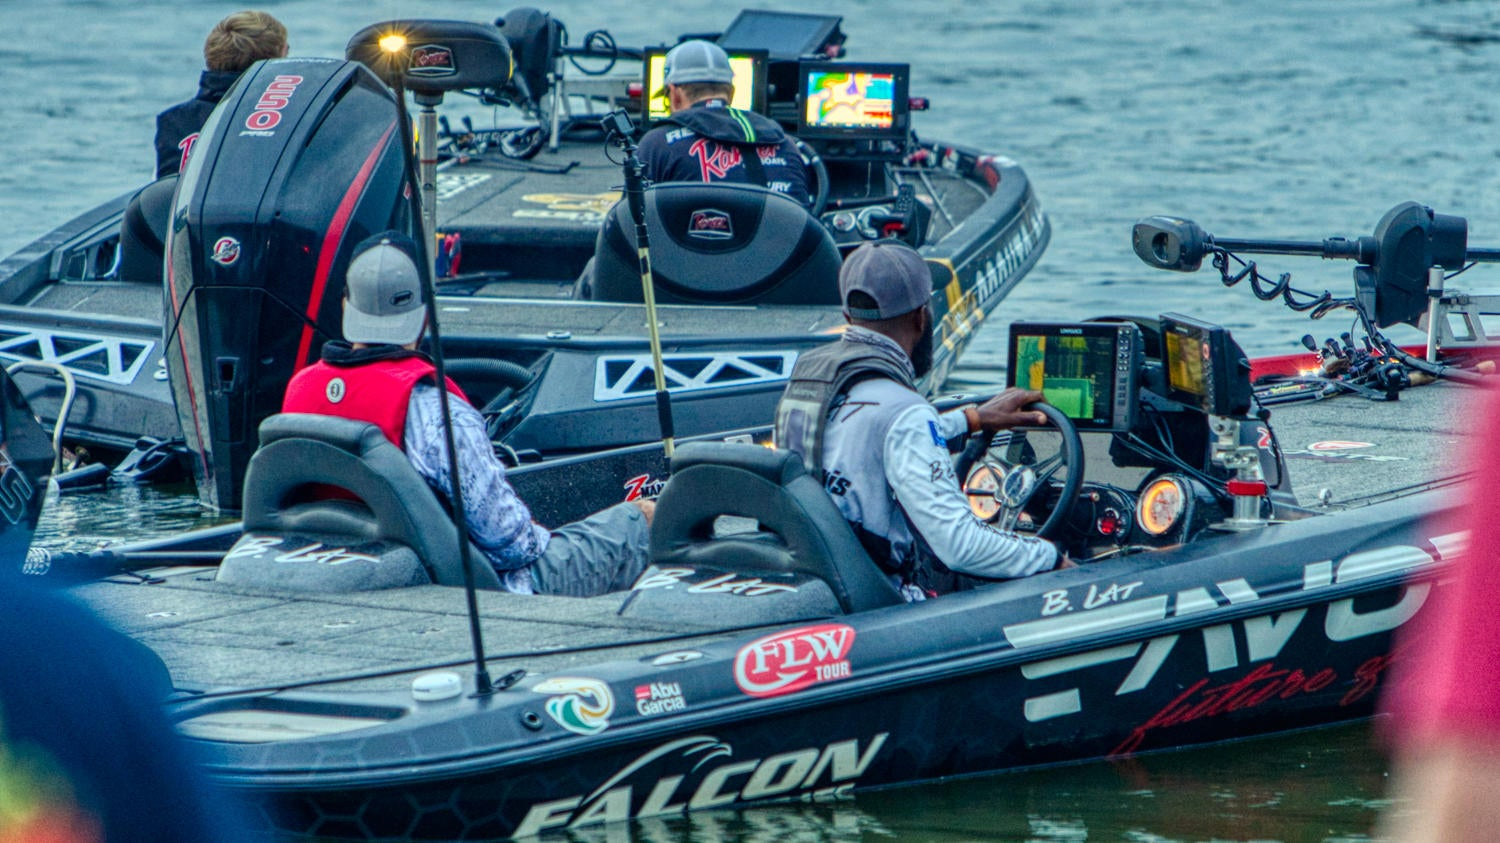 flw-cup-day2-14.jpg